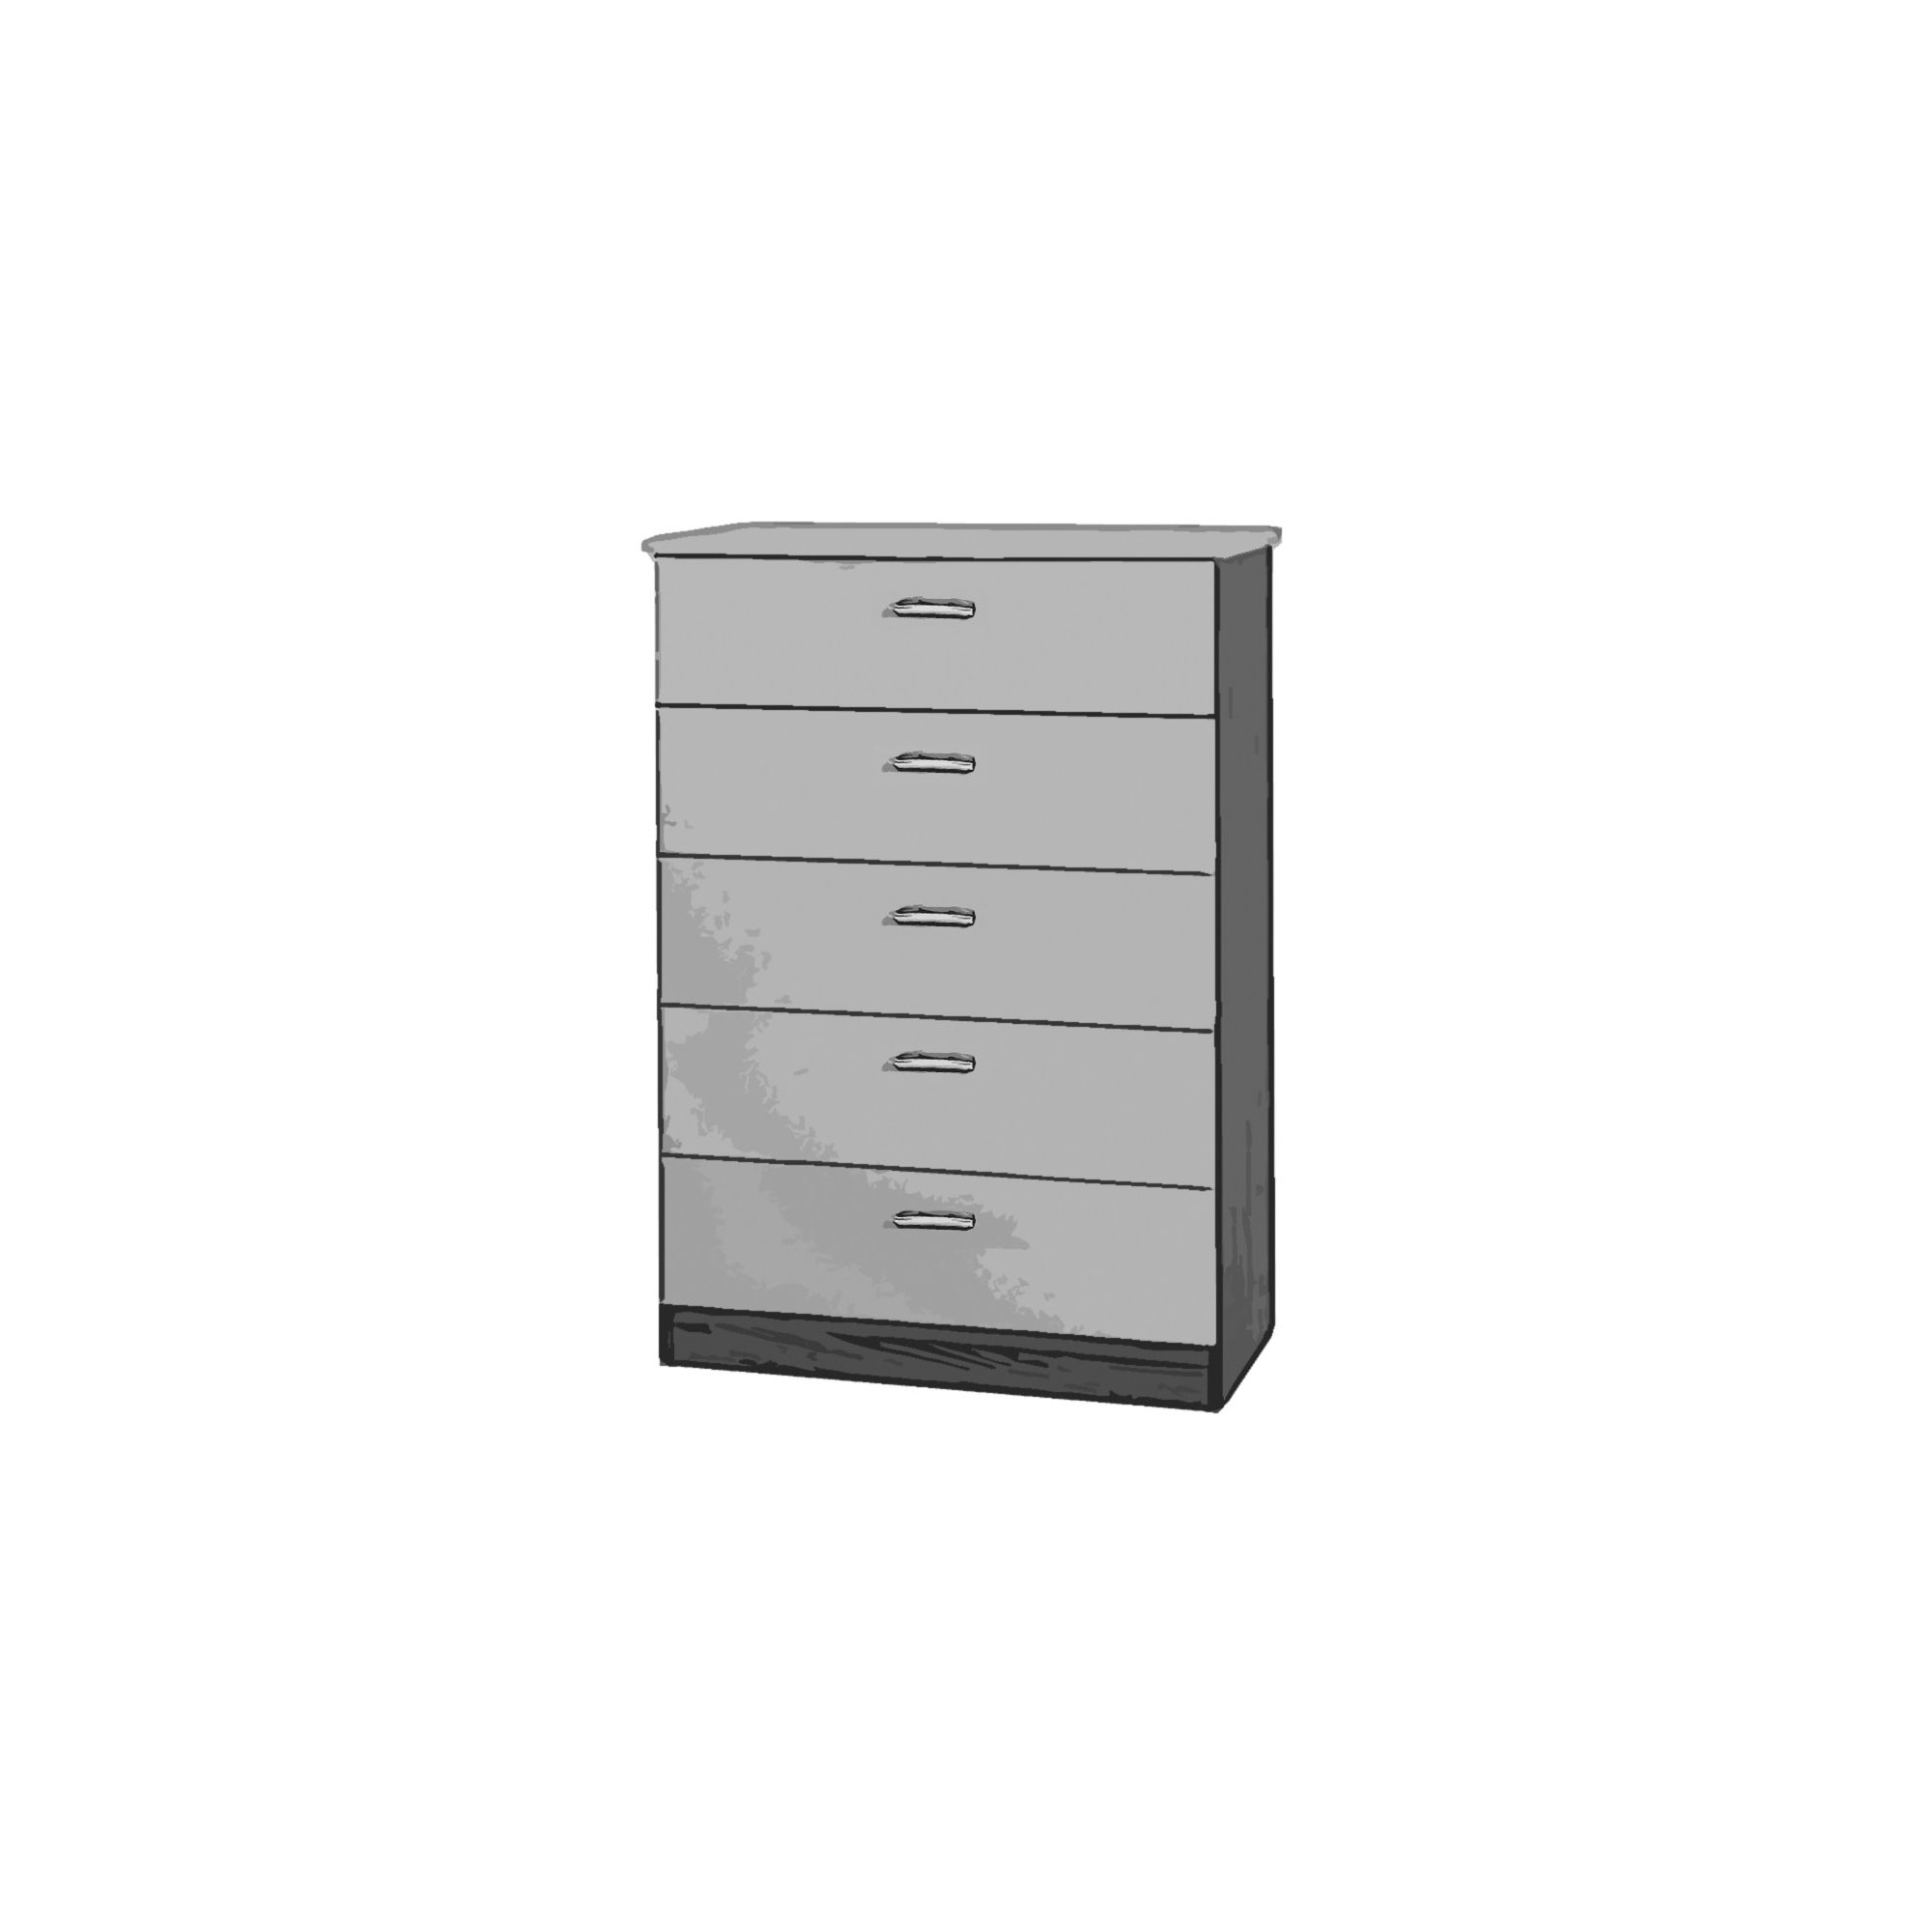 Welcome Furniture Mayfair 5 Drawer Chest - Aubergine - Ebony - Cream at Tesco Direct